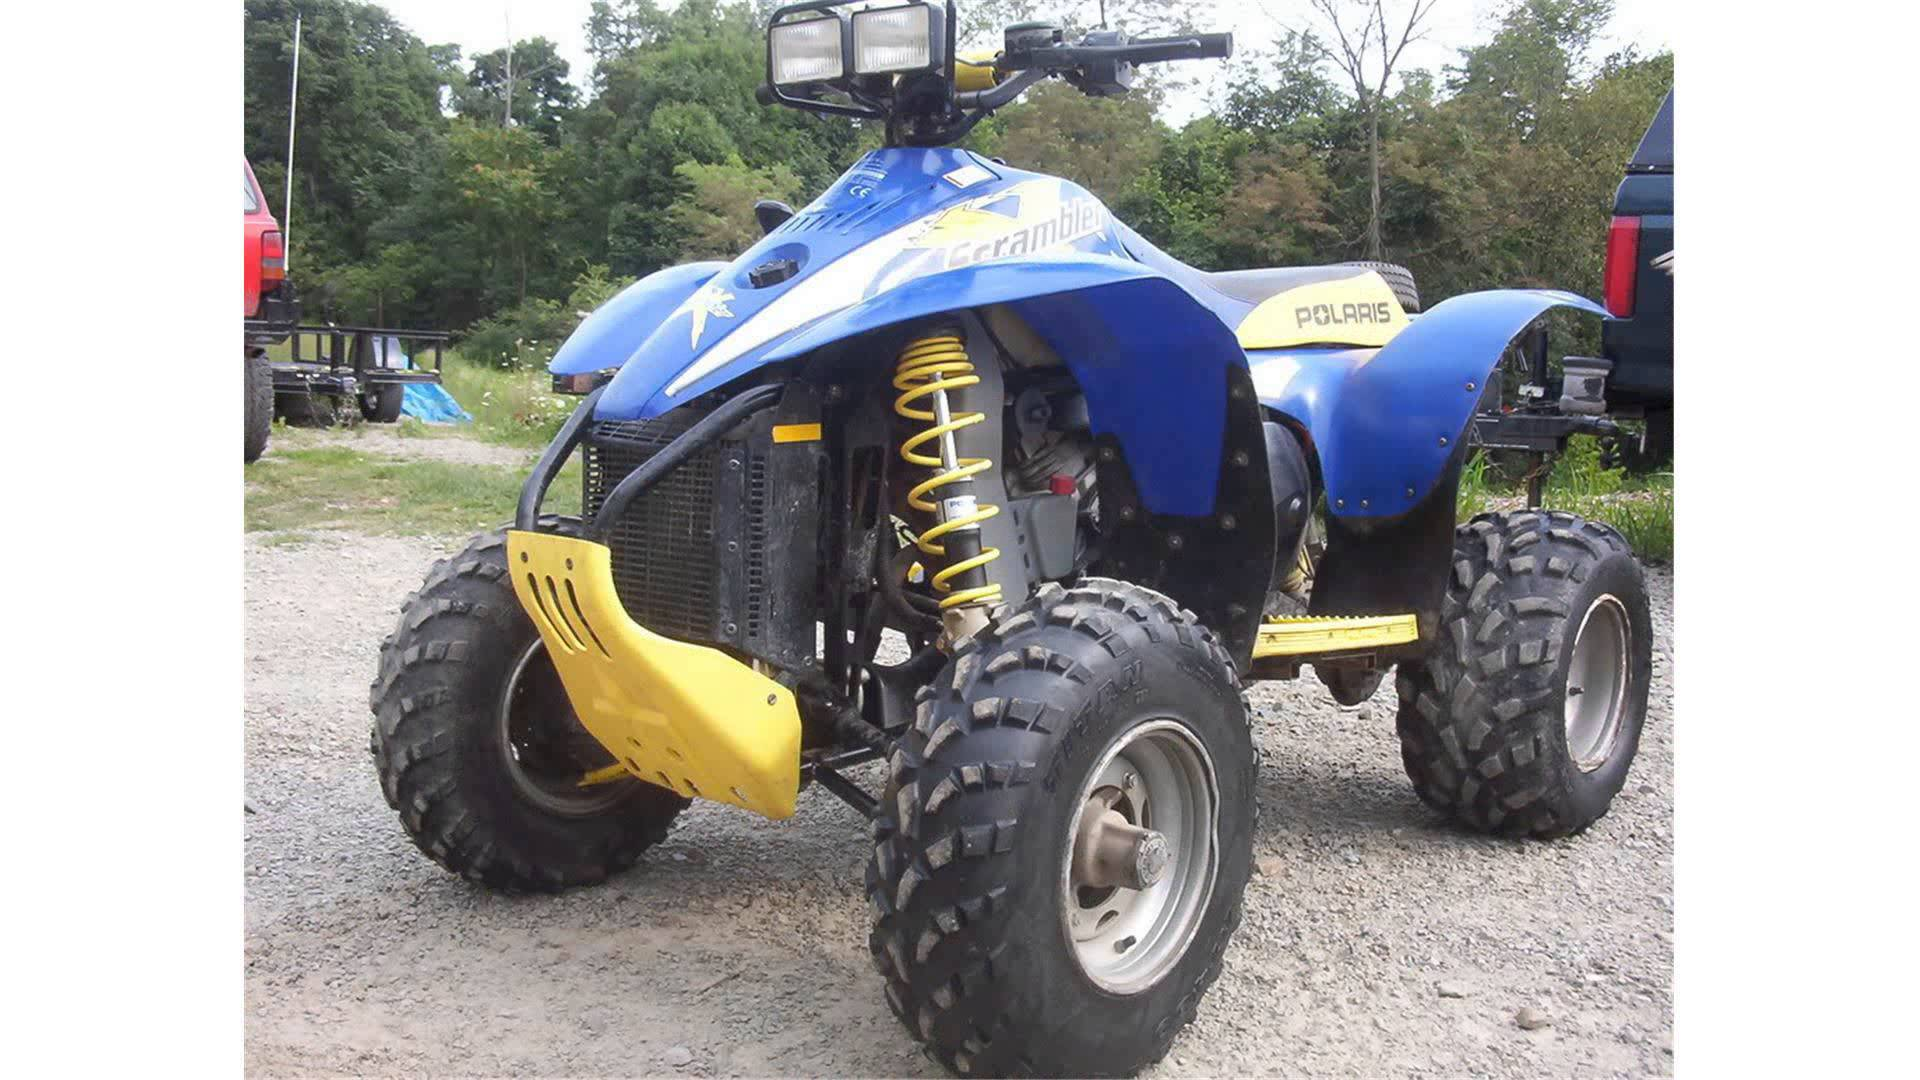 Polaris Scrambler 500 2002 images #120906